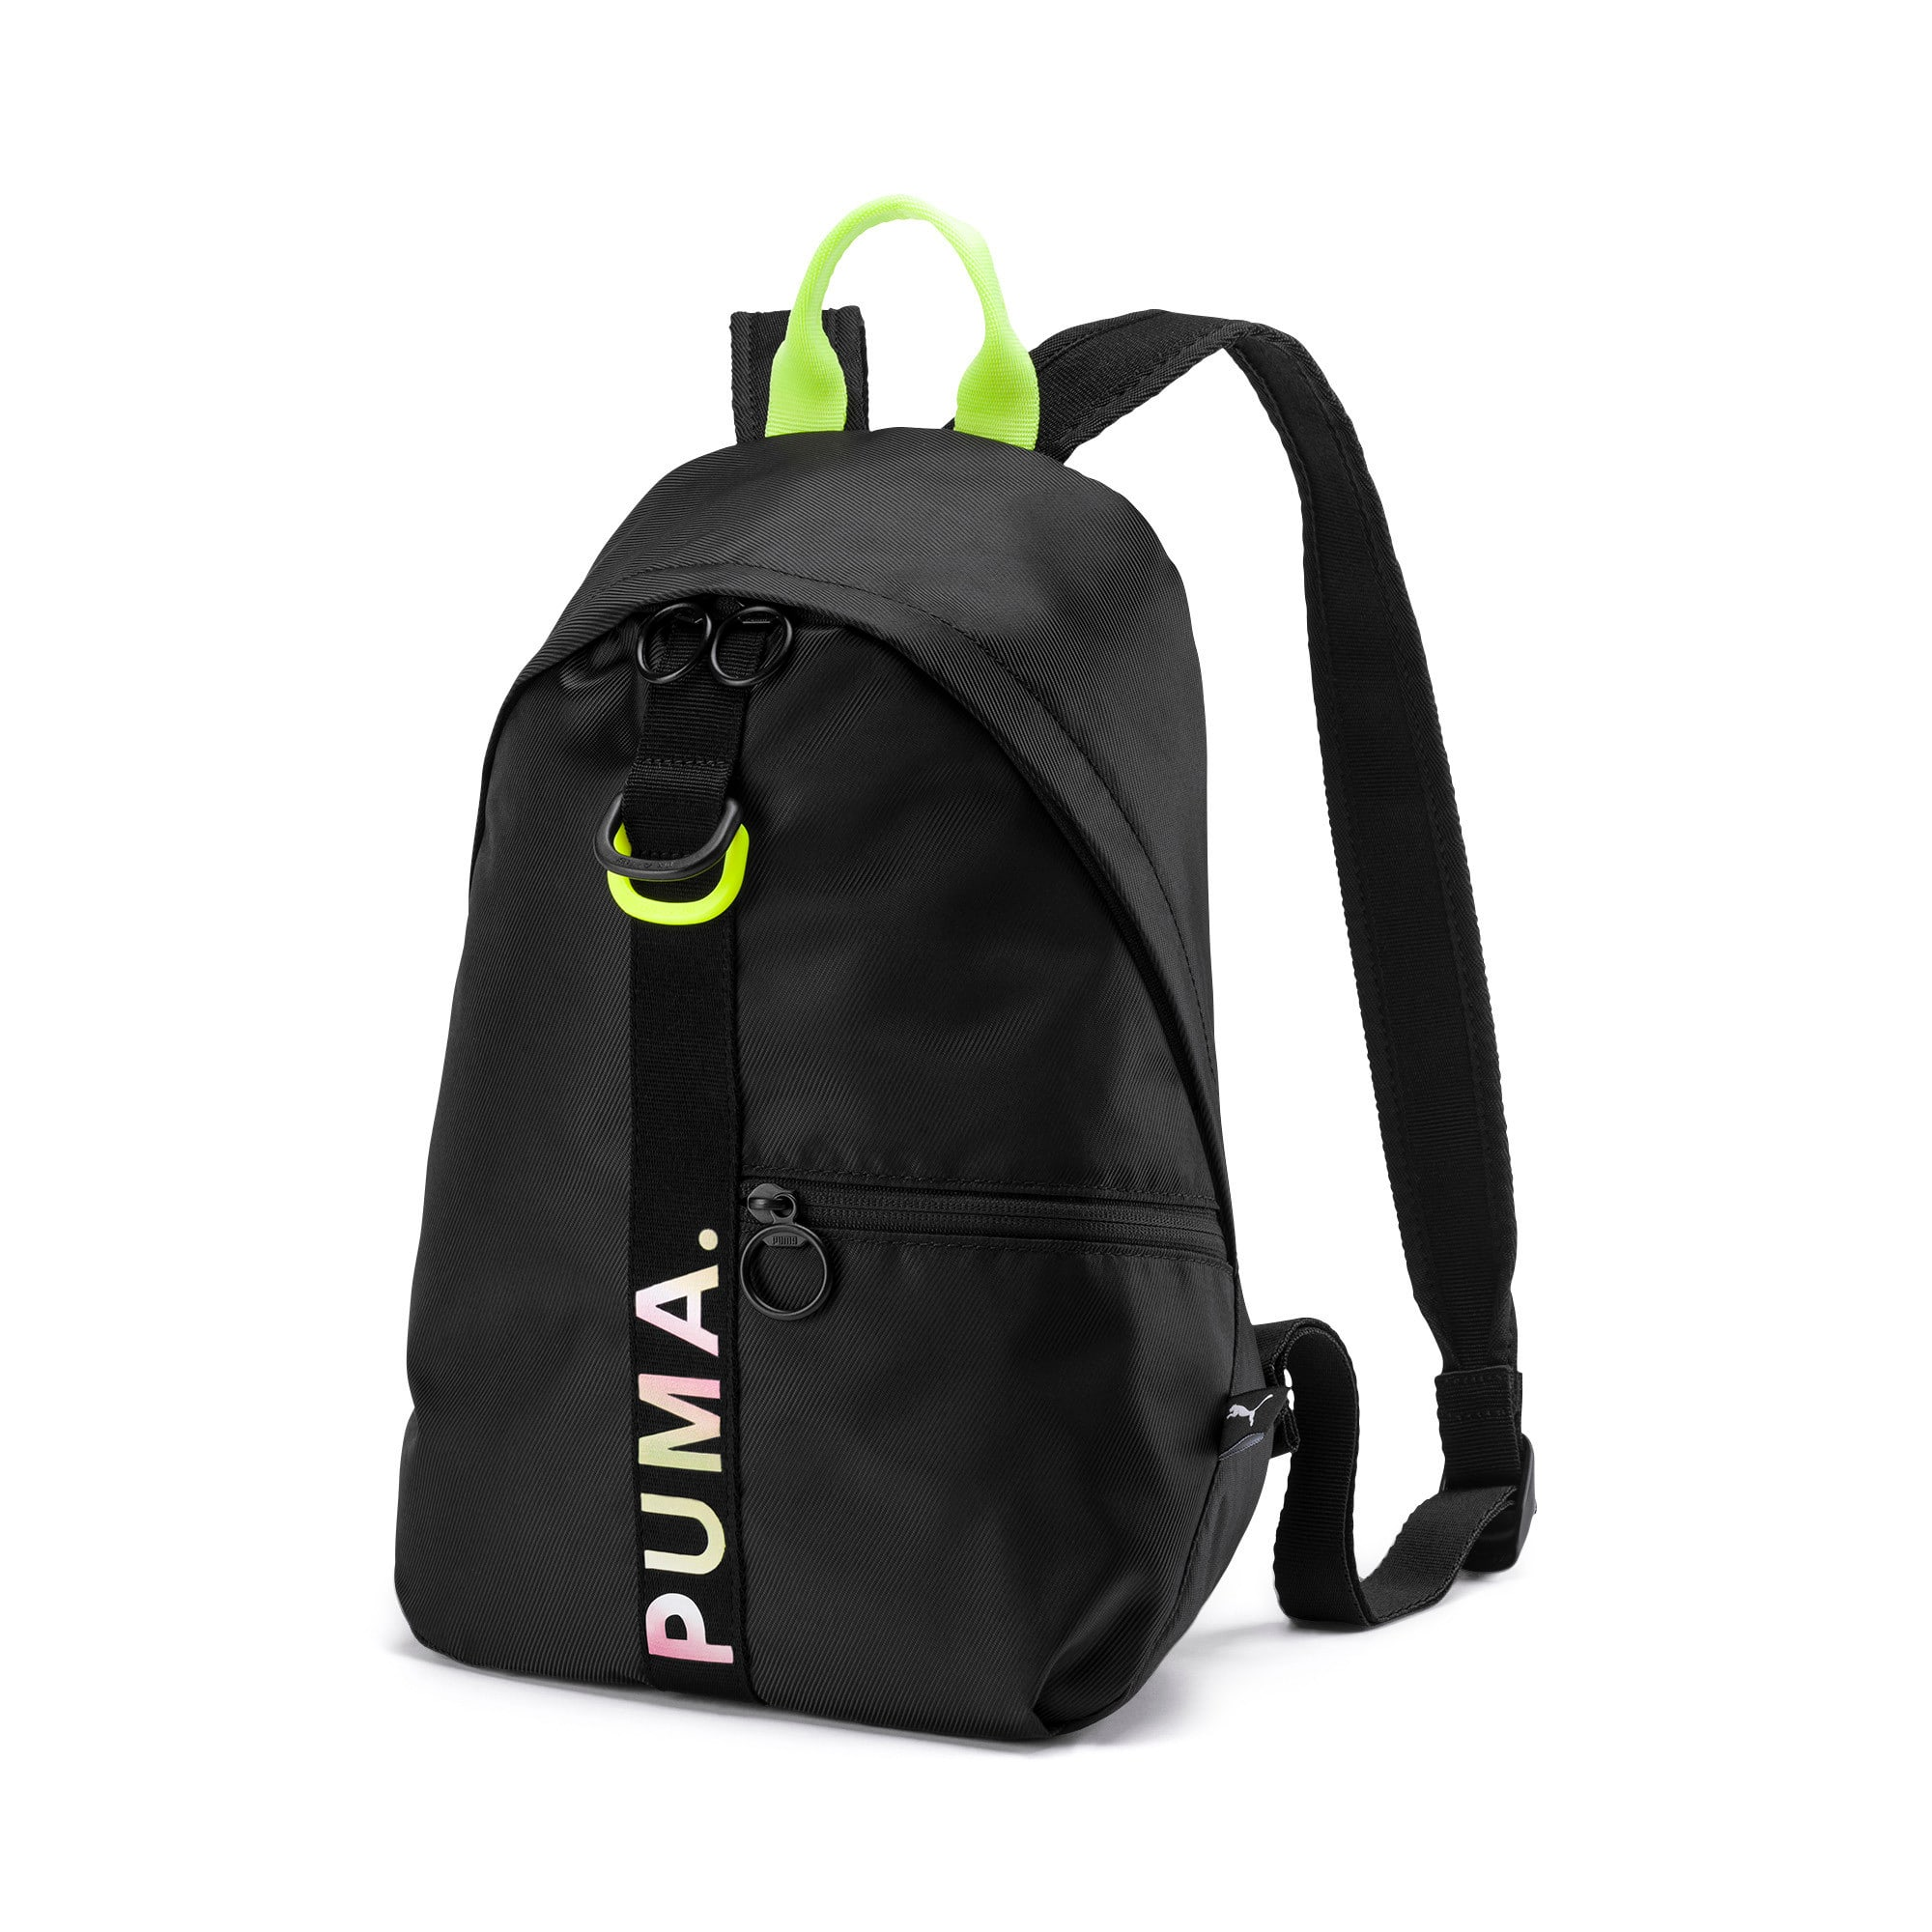 Thumbnail 1 of Prime Street Arch Backpack, Puma Black, medium